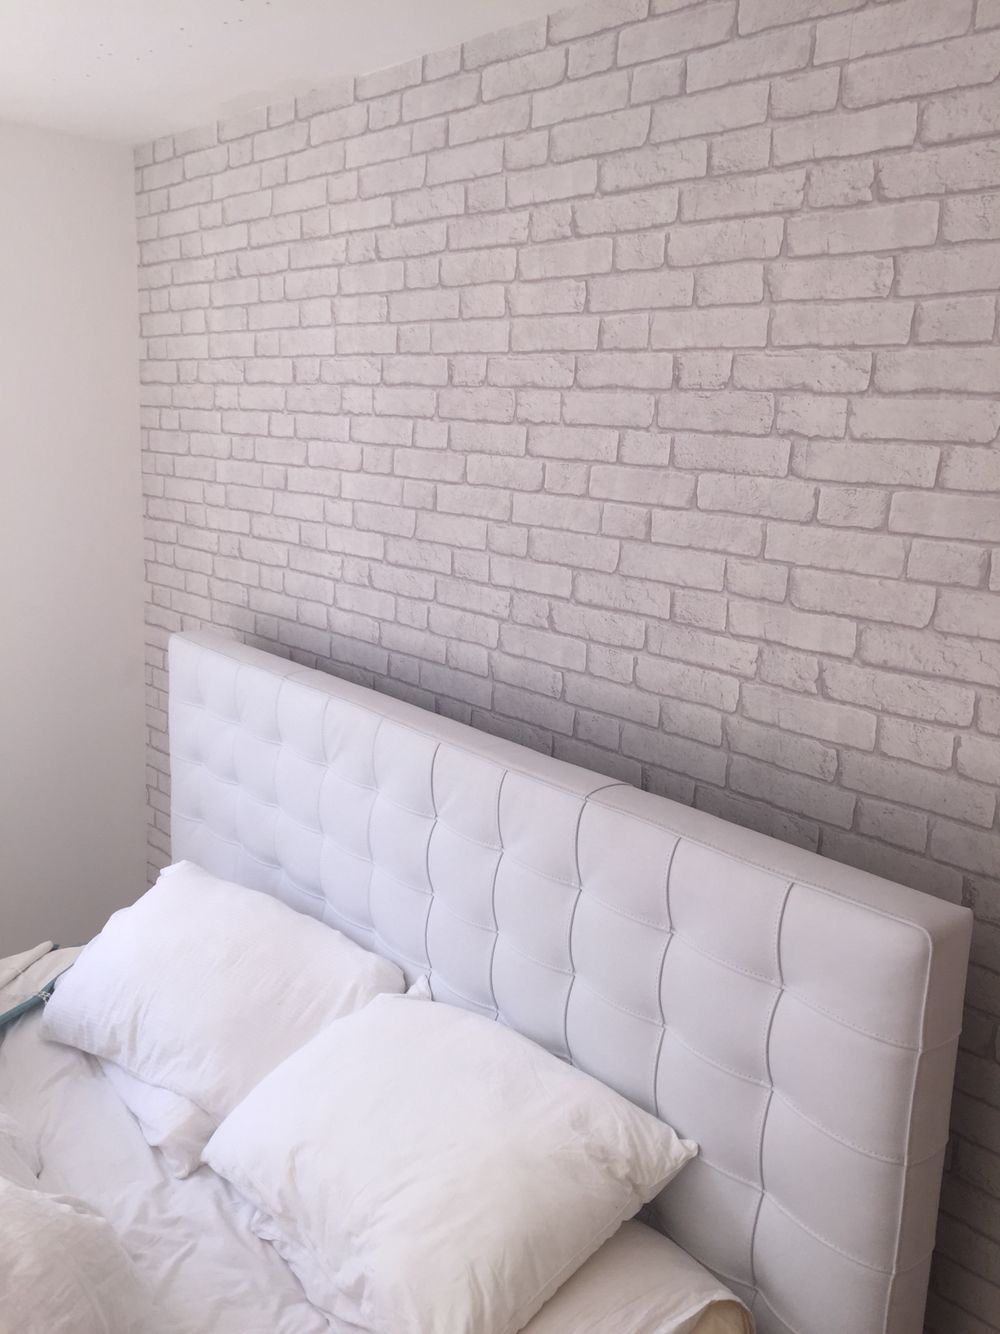 peel and stick 3d wall panel for interior wall decor, white brick